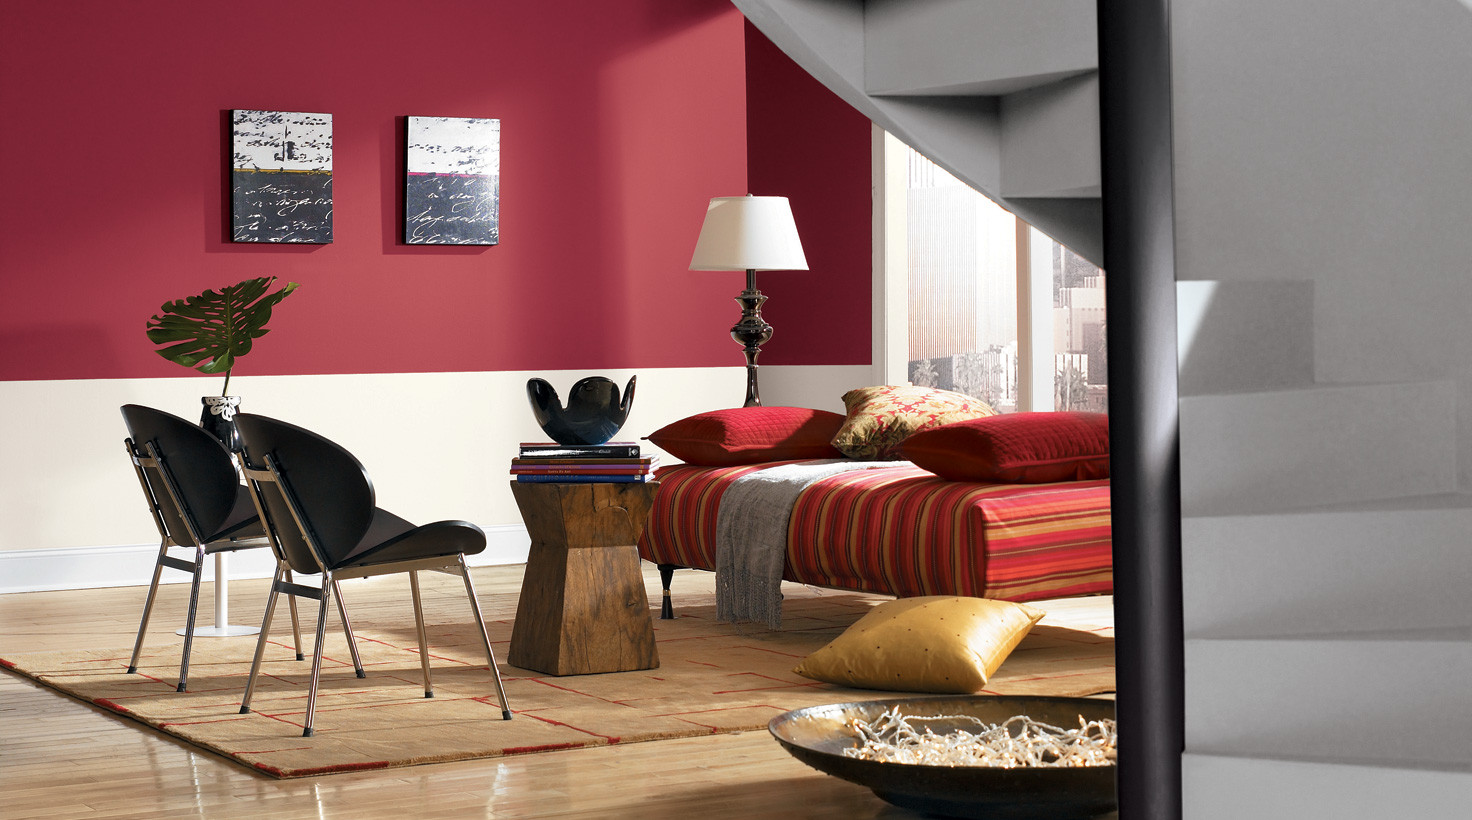 Best ideas about Paint Colors For Family Room . Save or Pin Living Room Paint Color Ideas Now.